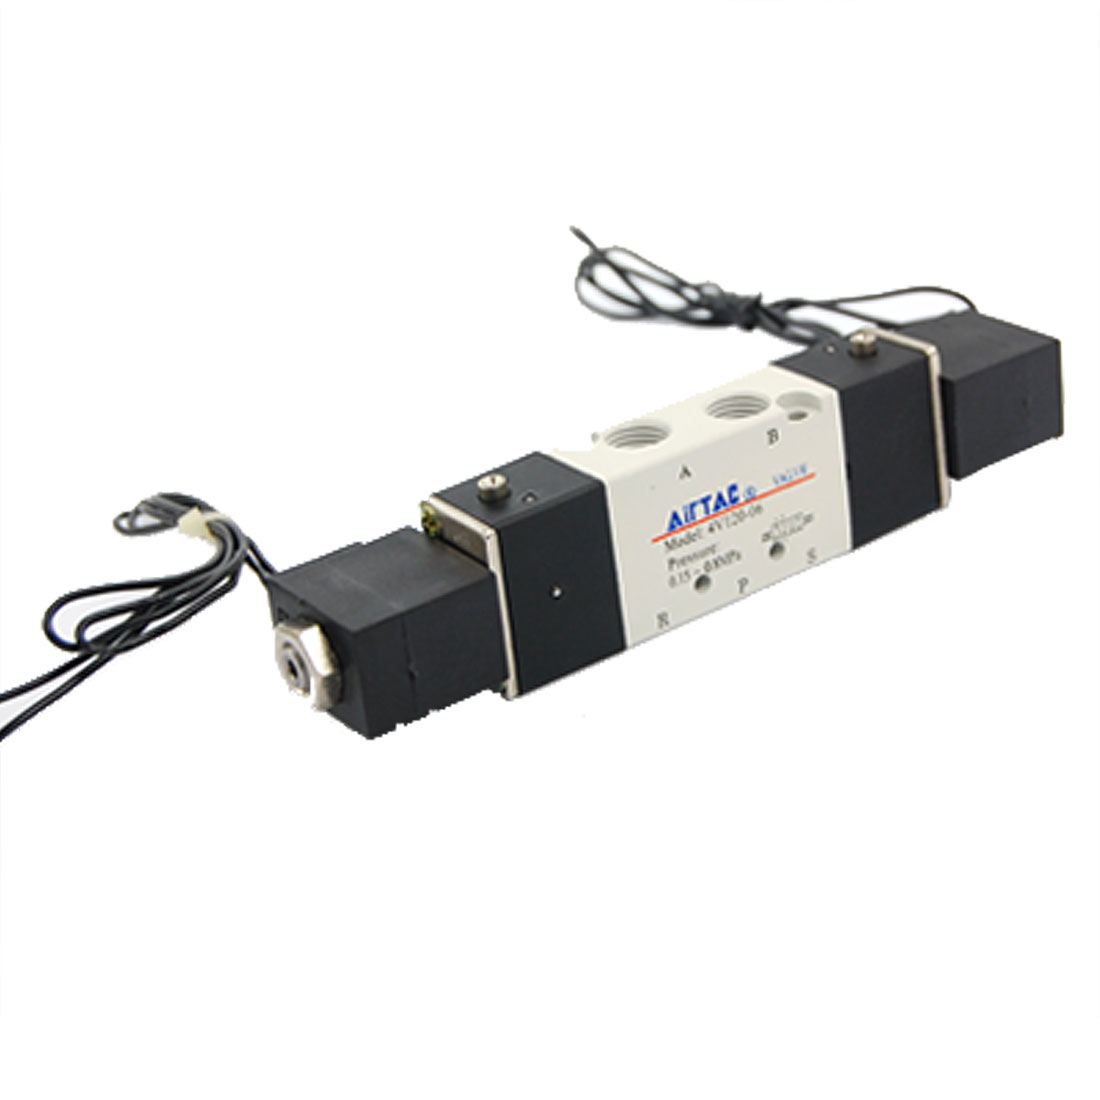 Double Coil 2 Position 5 Port Air Solenoid Valve AC220V 4V120-06